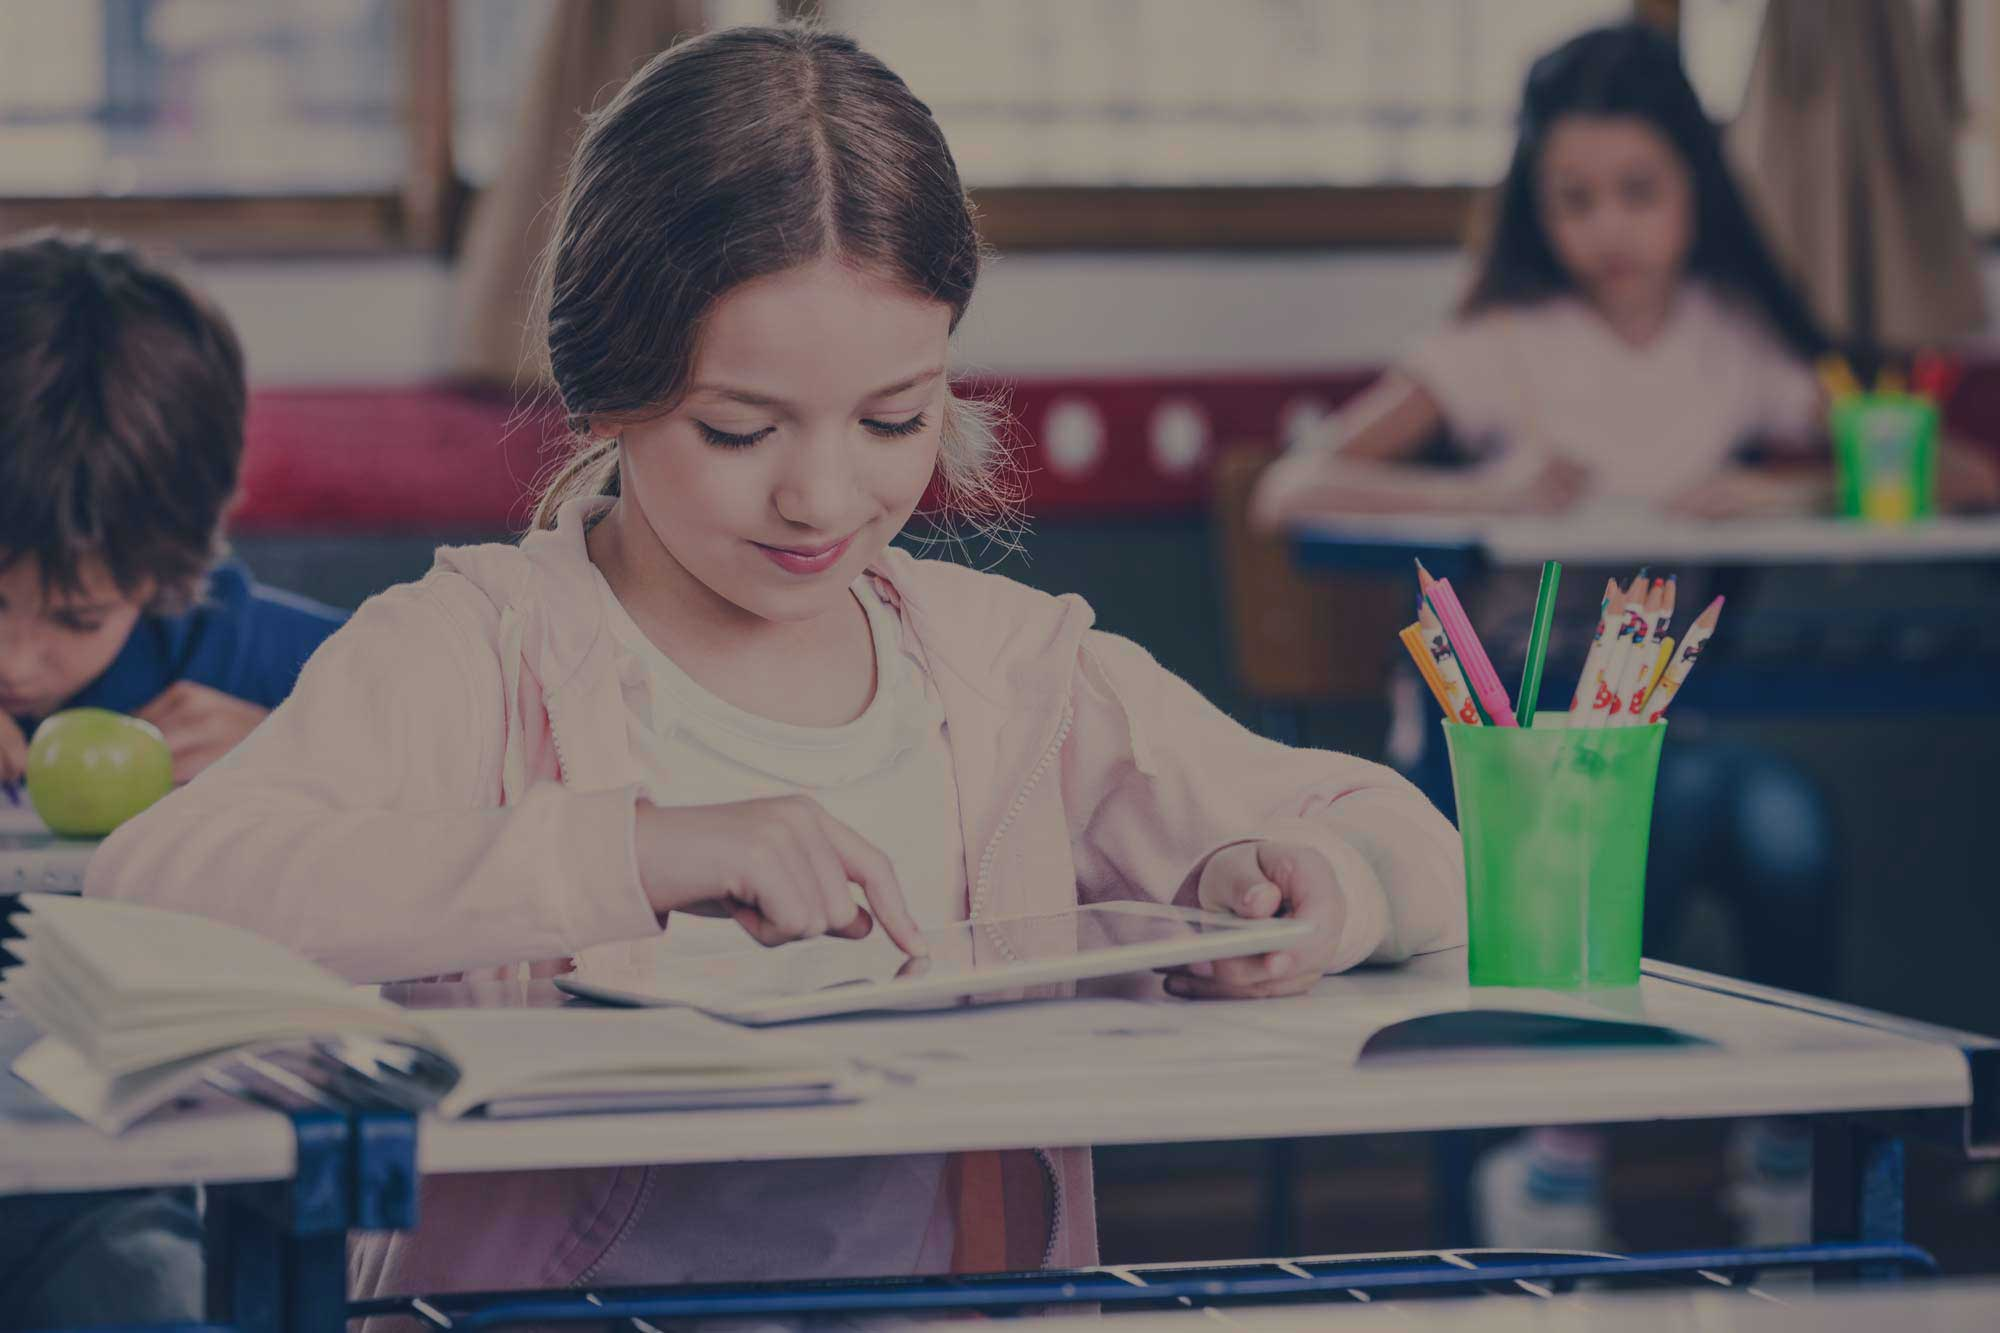 Why Use iPads & Other Technology in the Classroom as Learning Tools